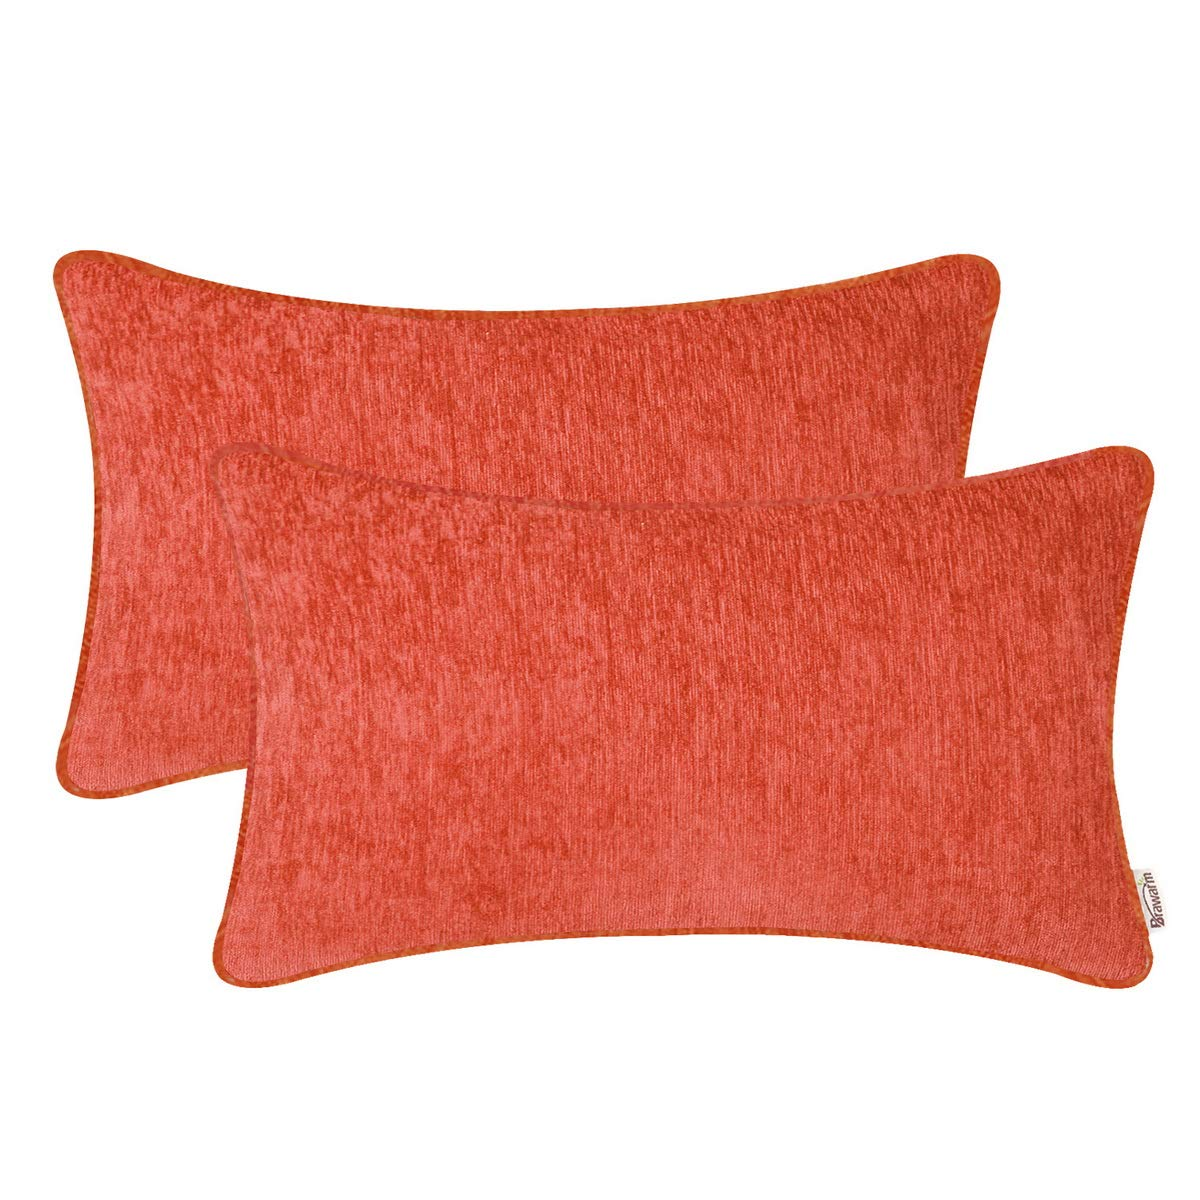 BRAWARM Pack of 2 Cozy Bolster Pillow Covers Cases for Sofa Couch Home Decoration Solid Dyed Striped Soft Chenille with Piping 12 X 20 Inches Living Coral